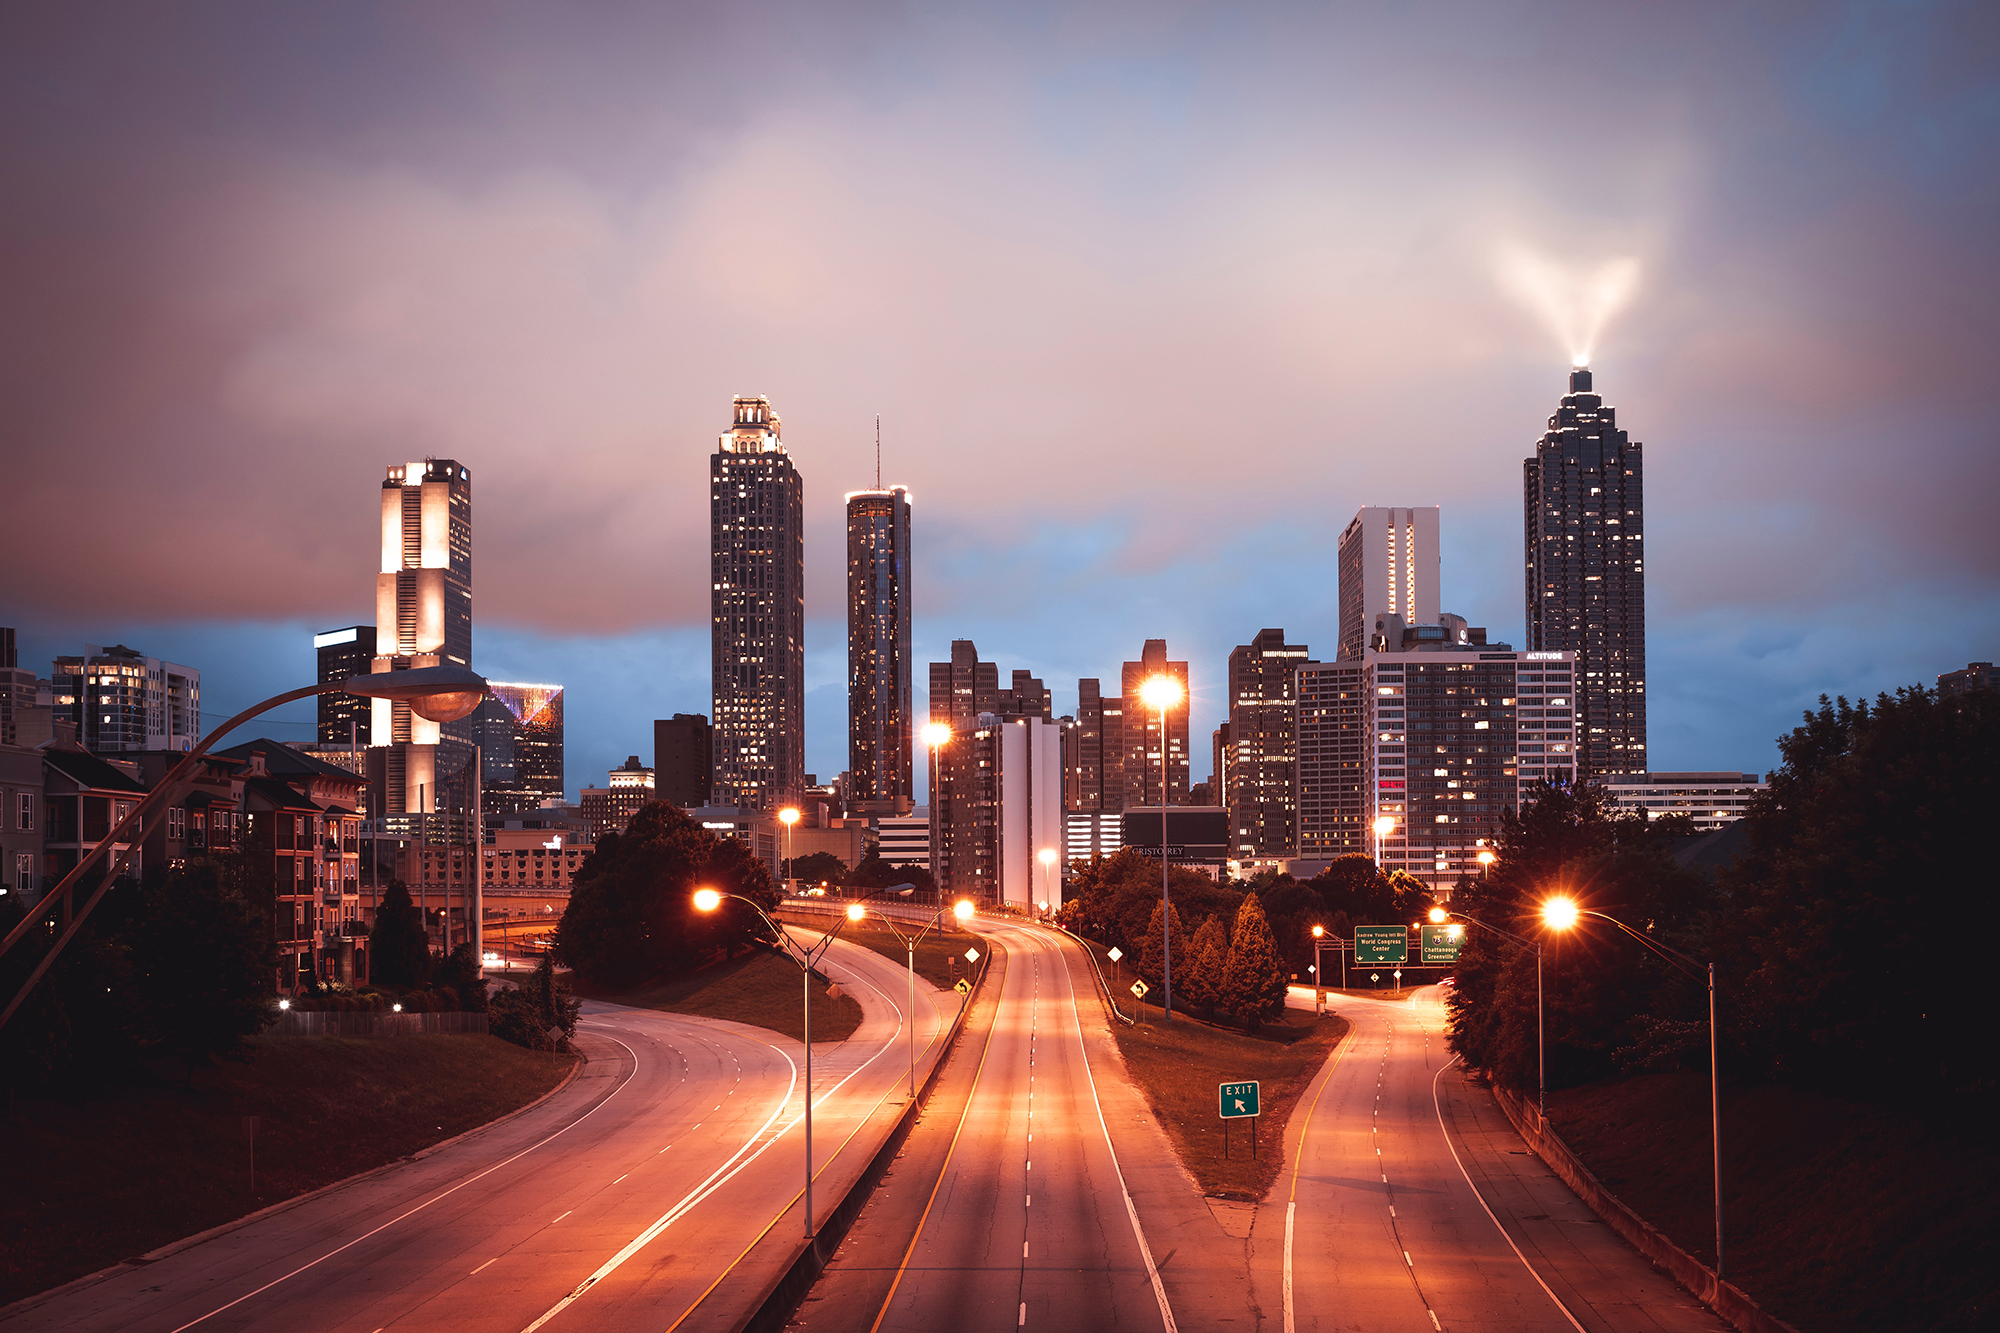 Atlanta skyline at night. Photo by Christopher Alvarenga.